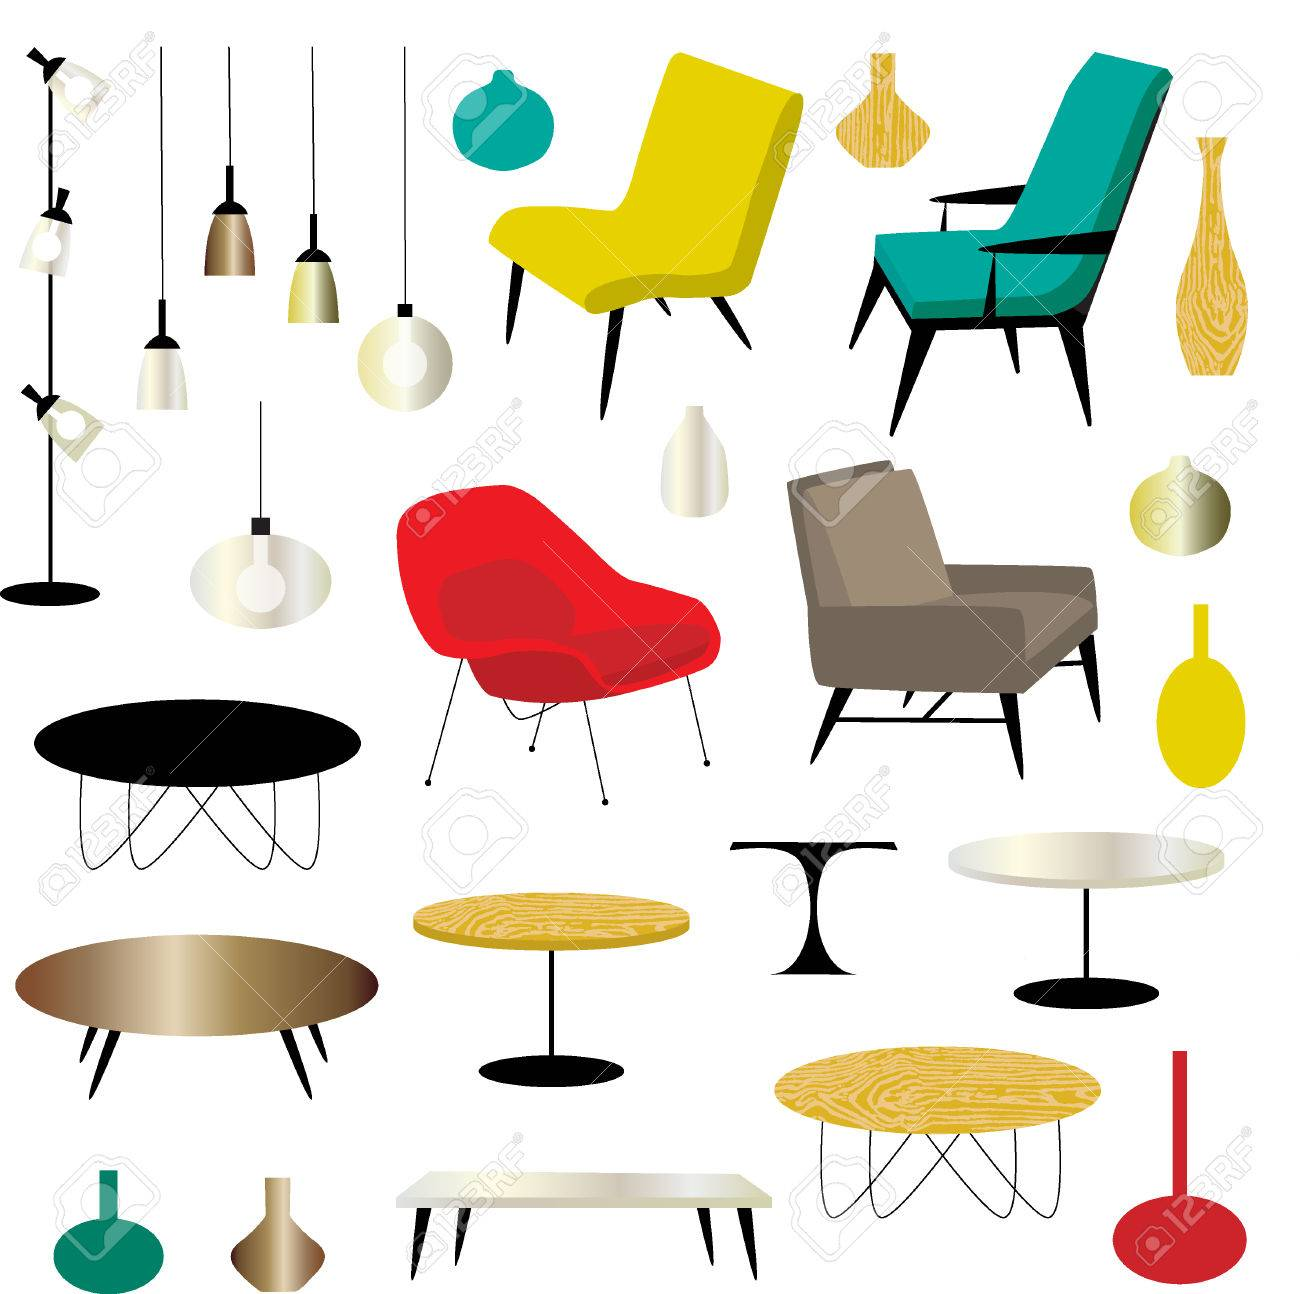 Furniture Clipart Royalty Free Cliparts, Vectors, And Stock ...